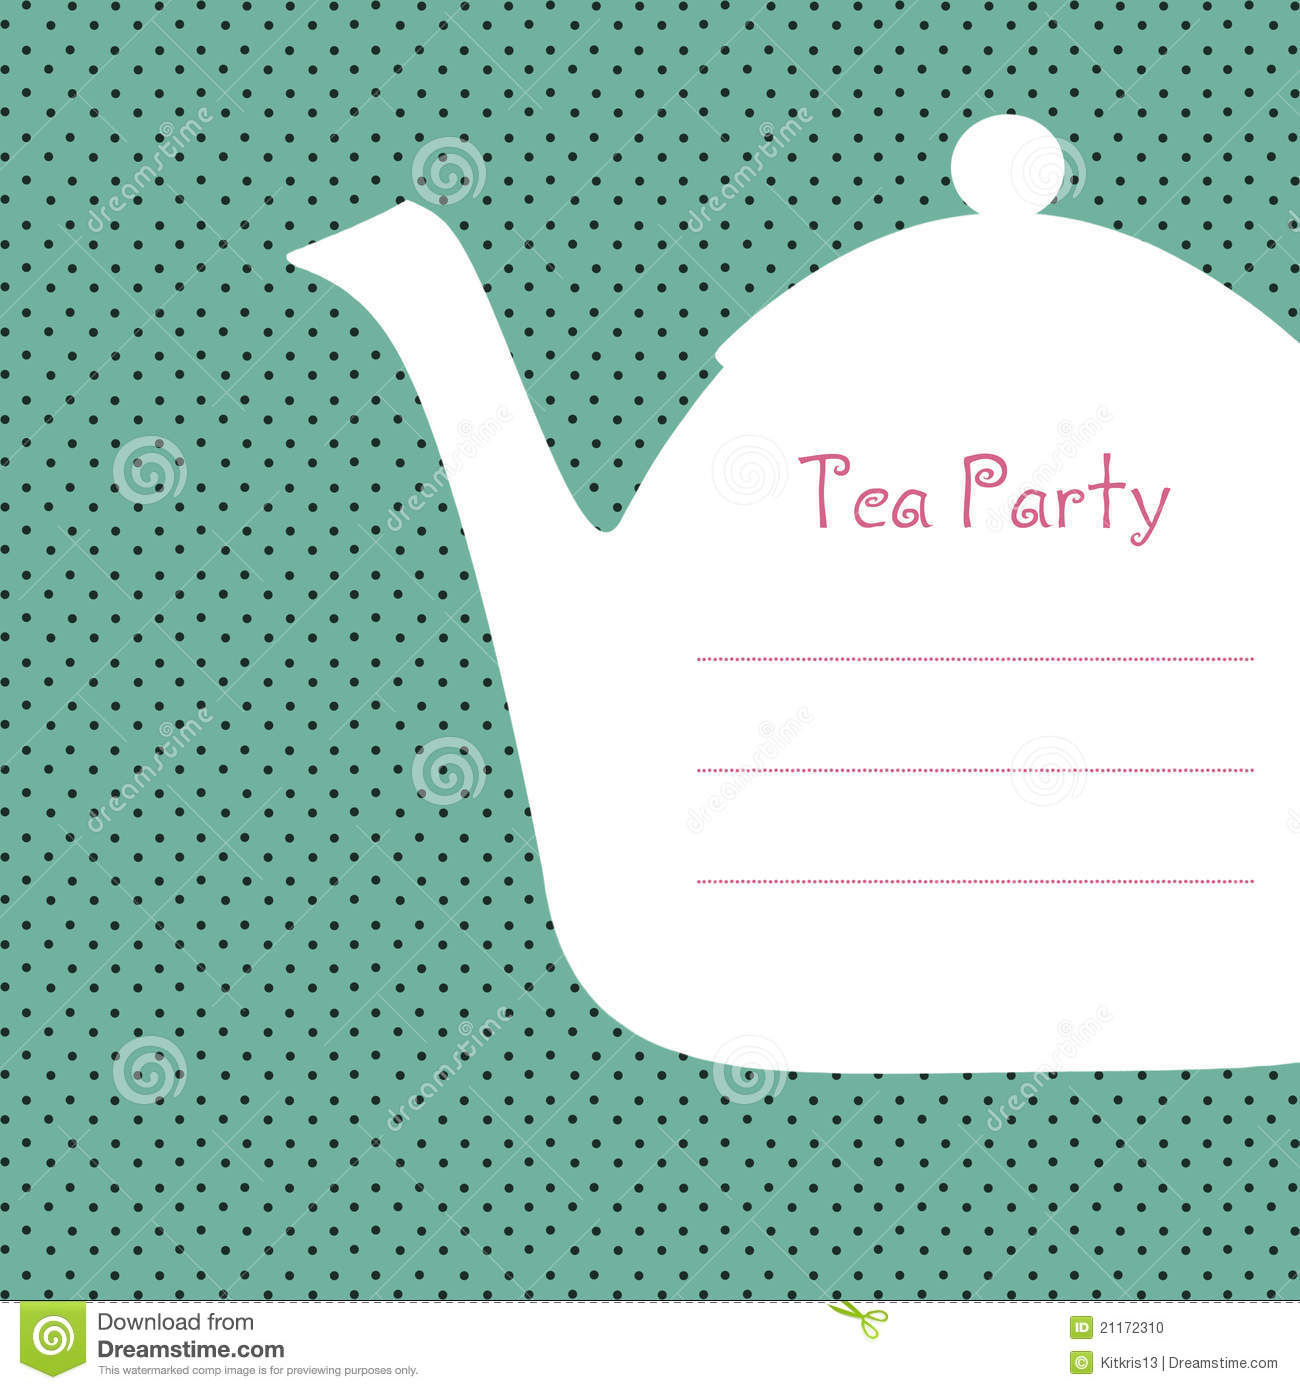 Free Tea Party Invitations Templates is great invitations layout